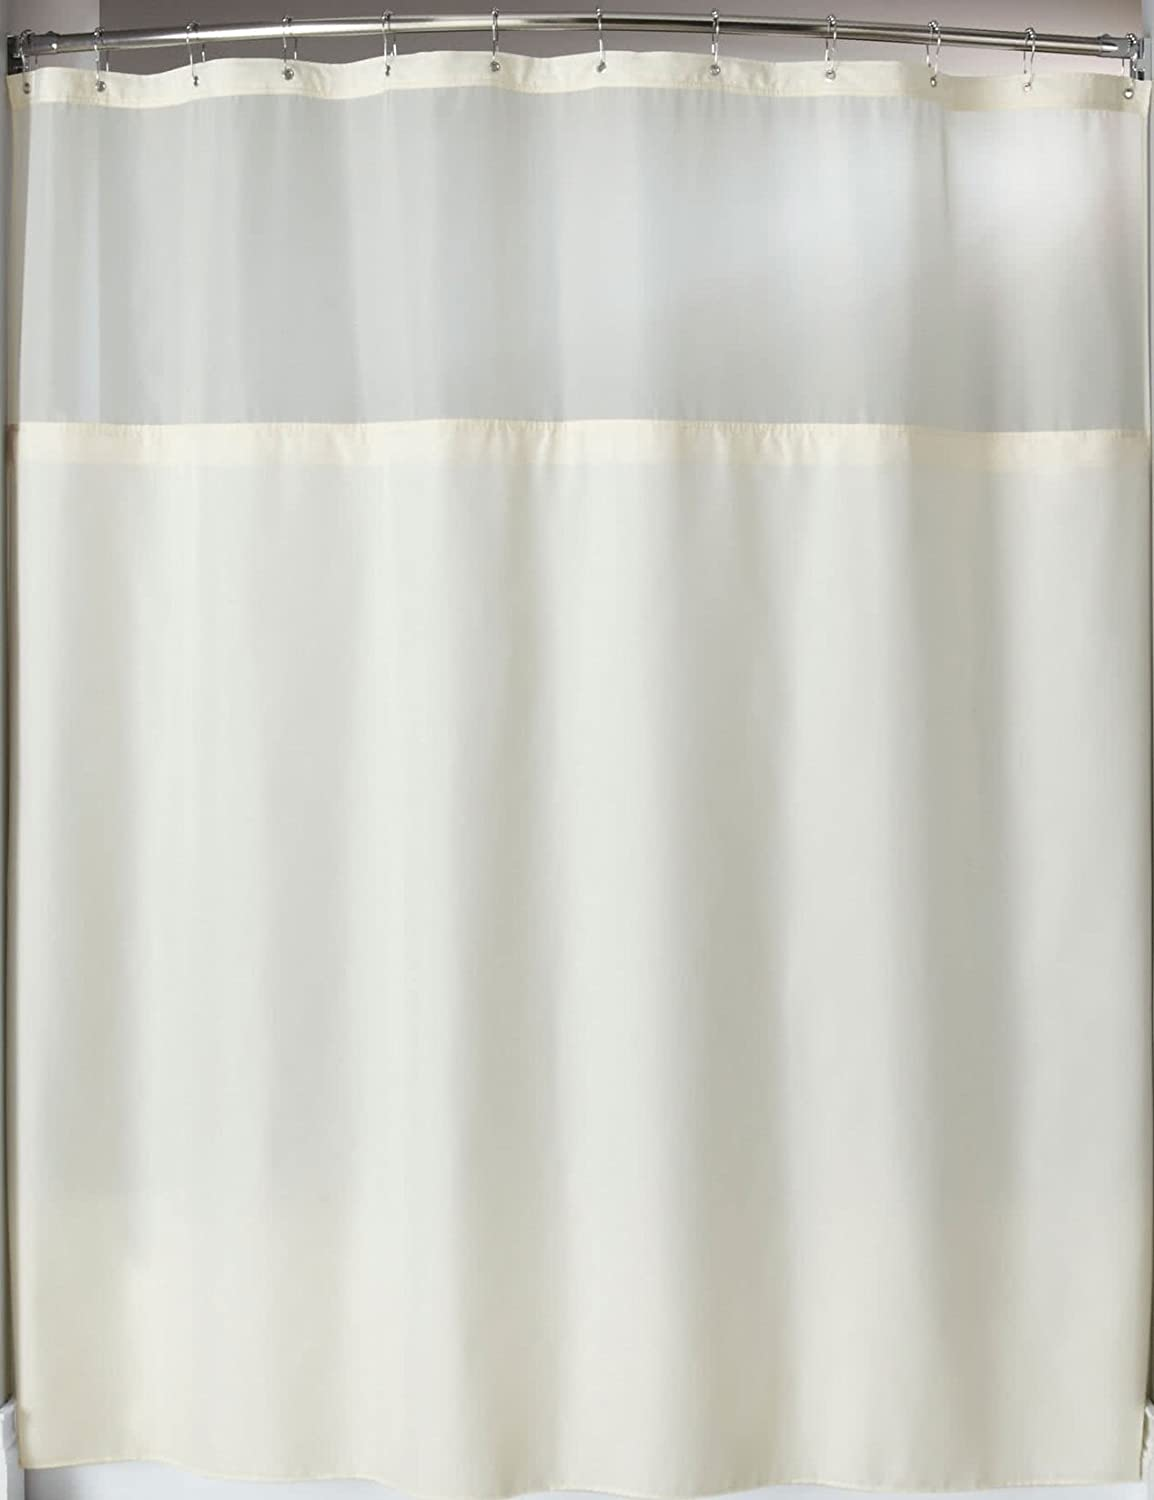 Trendy Linens Hotel Quality Shower Curtain With Detachable Liner Includes Its A Snap Polyester Magnets And Sheer Voile Peek Boo Window